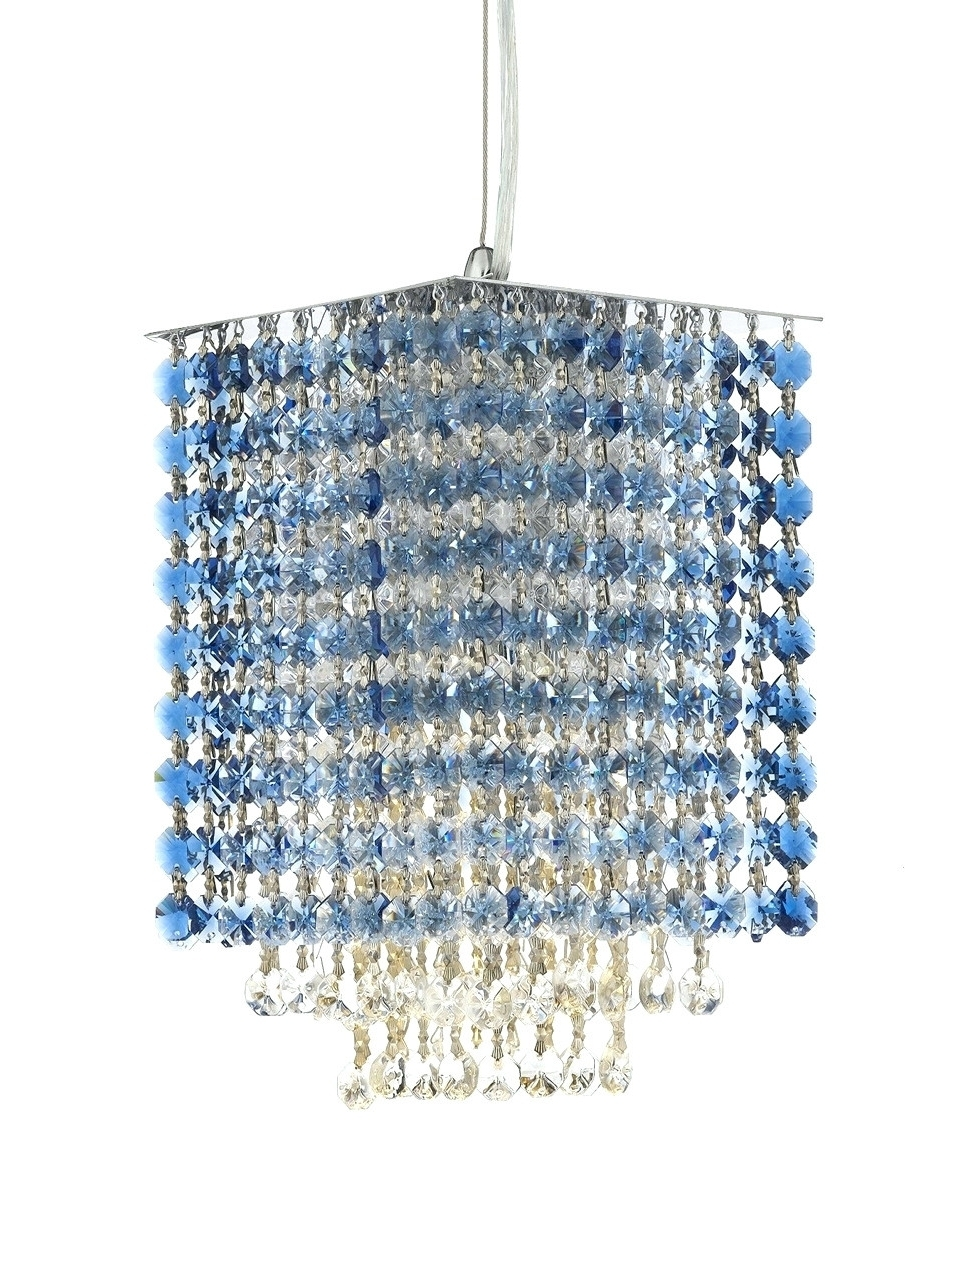 Turquoise Chandelier Awesome Chandeliers Turquoise Chandelier Intended For 2018 Turquoise Chandelier Crystals (View 6 of 20)